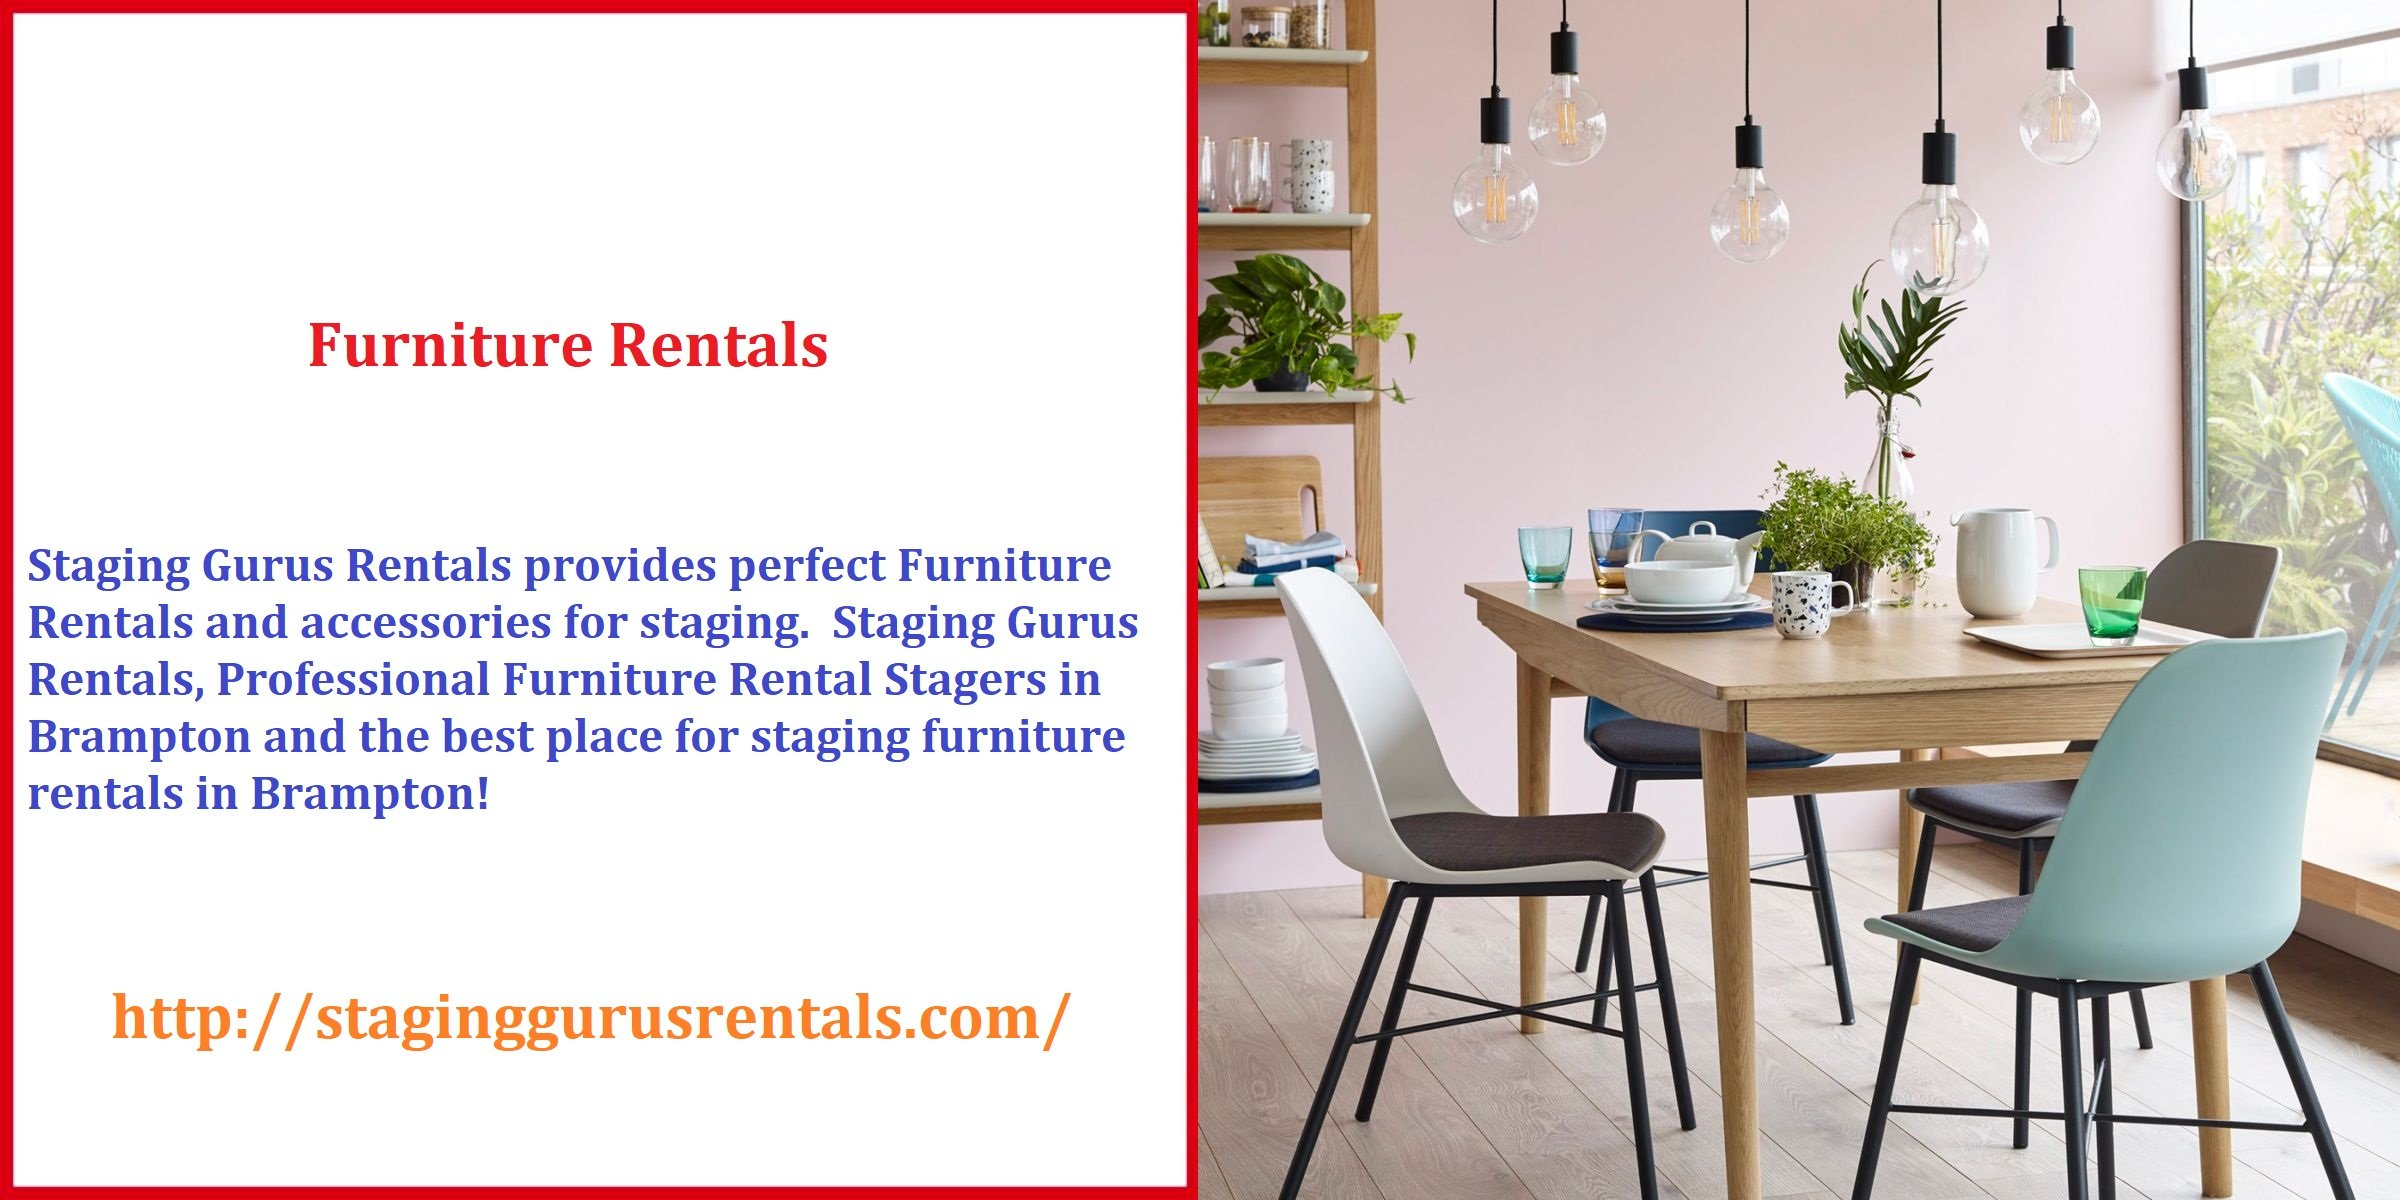 Furniture Rentals